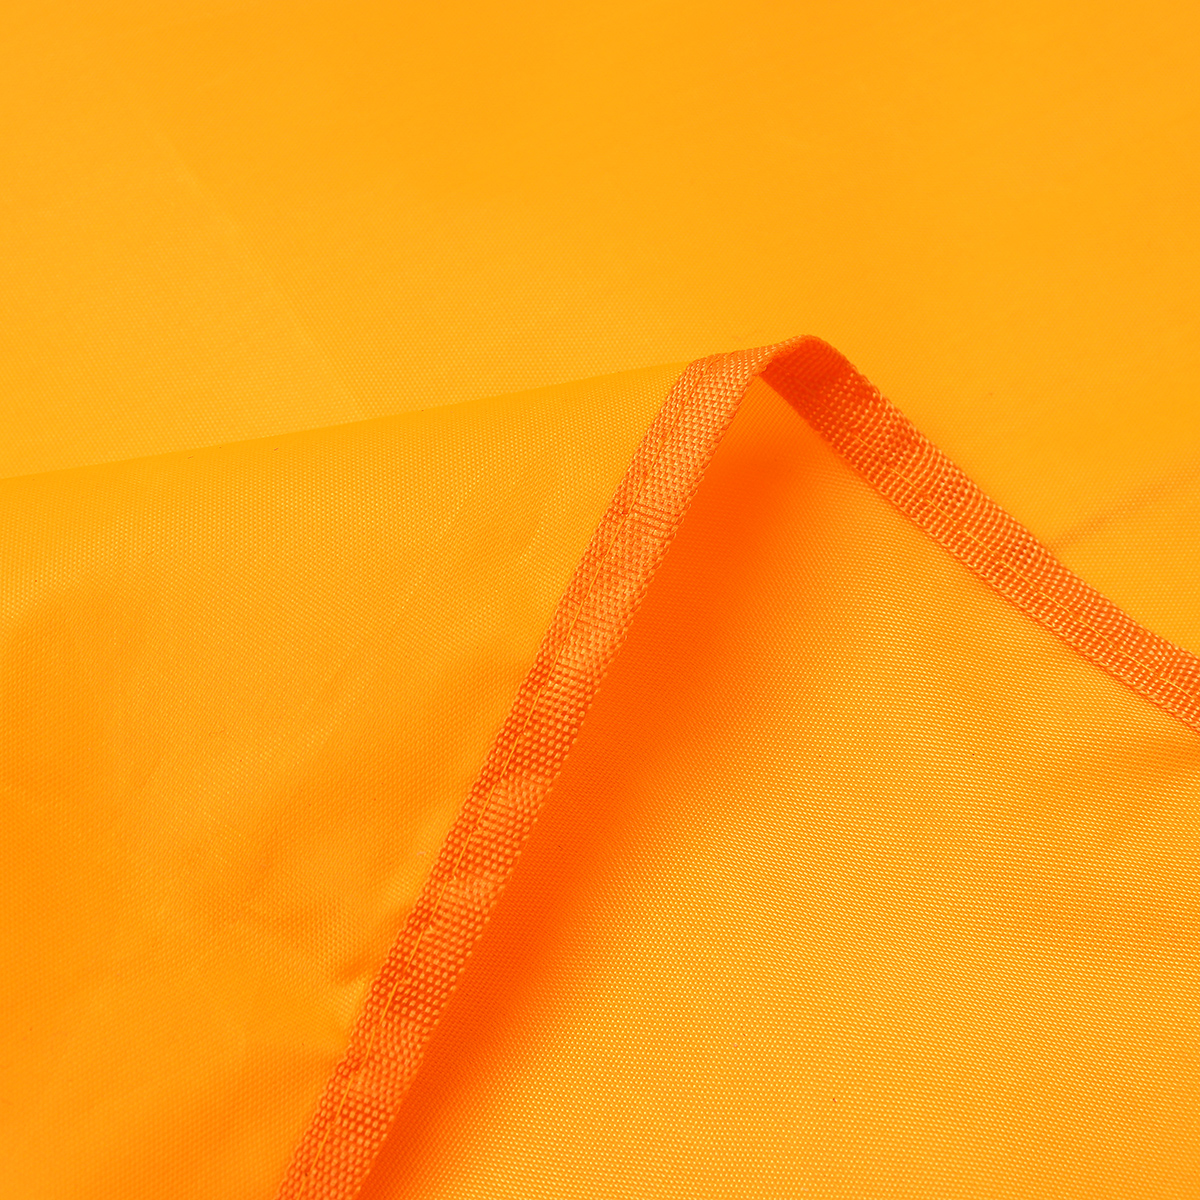 Orange Moisture-proof Tent Shelter Folding Awning Tarp Hammock 210D Oxford Fabric Rain Sunshade Picnic Mat Outdoor Camping Travel